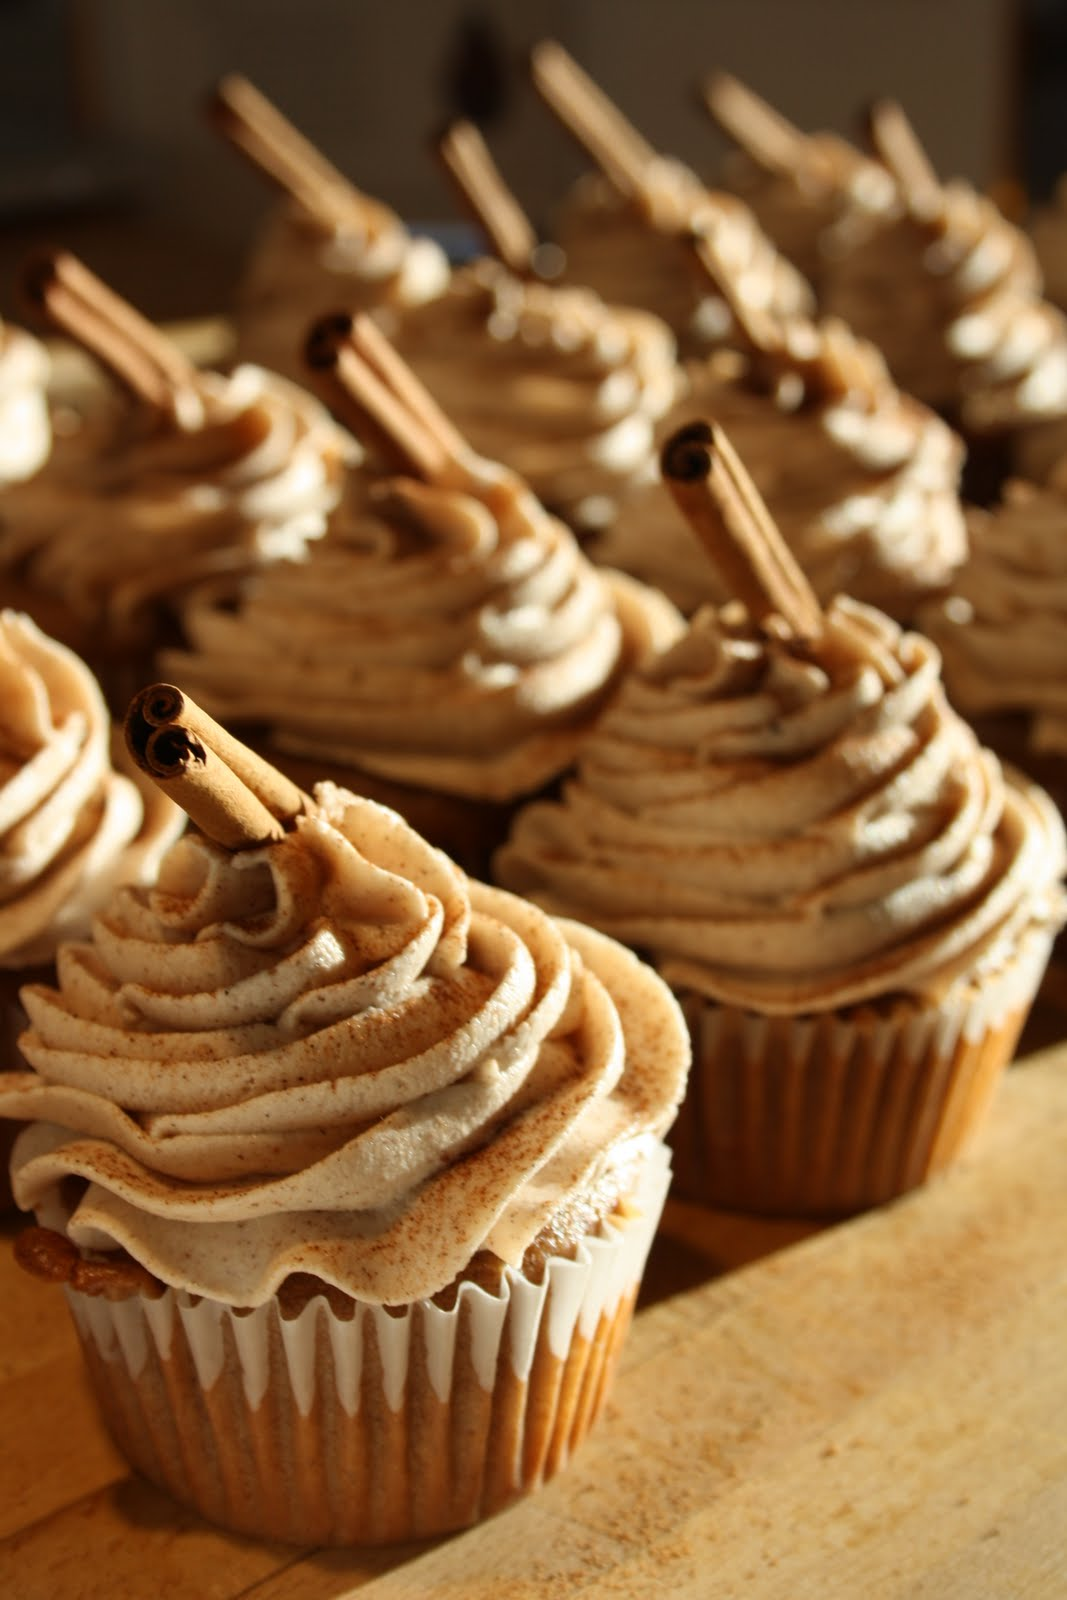 ... latte whole wheat pumpkin spice latte muffins chai latte cupcakes